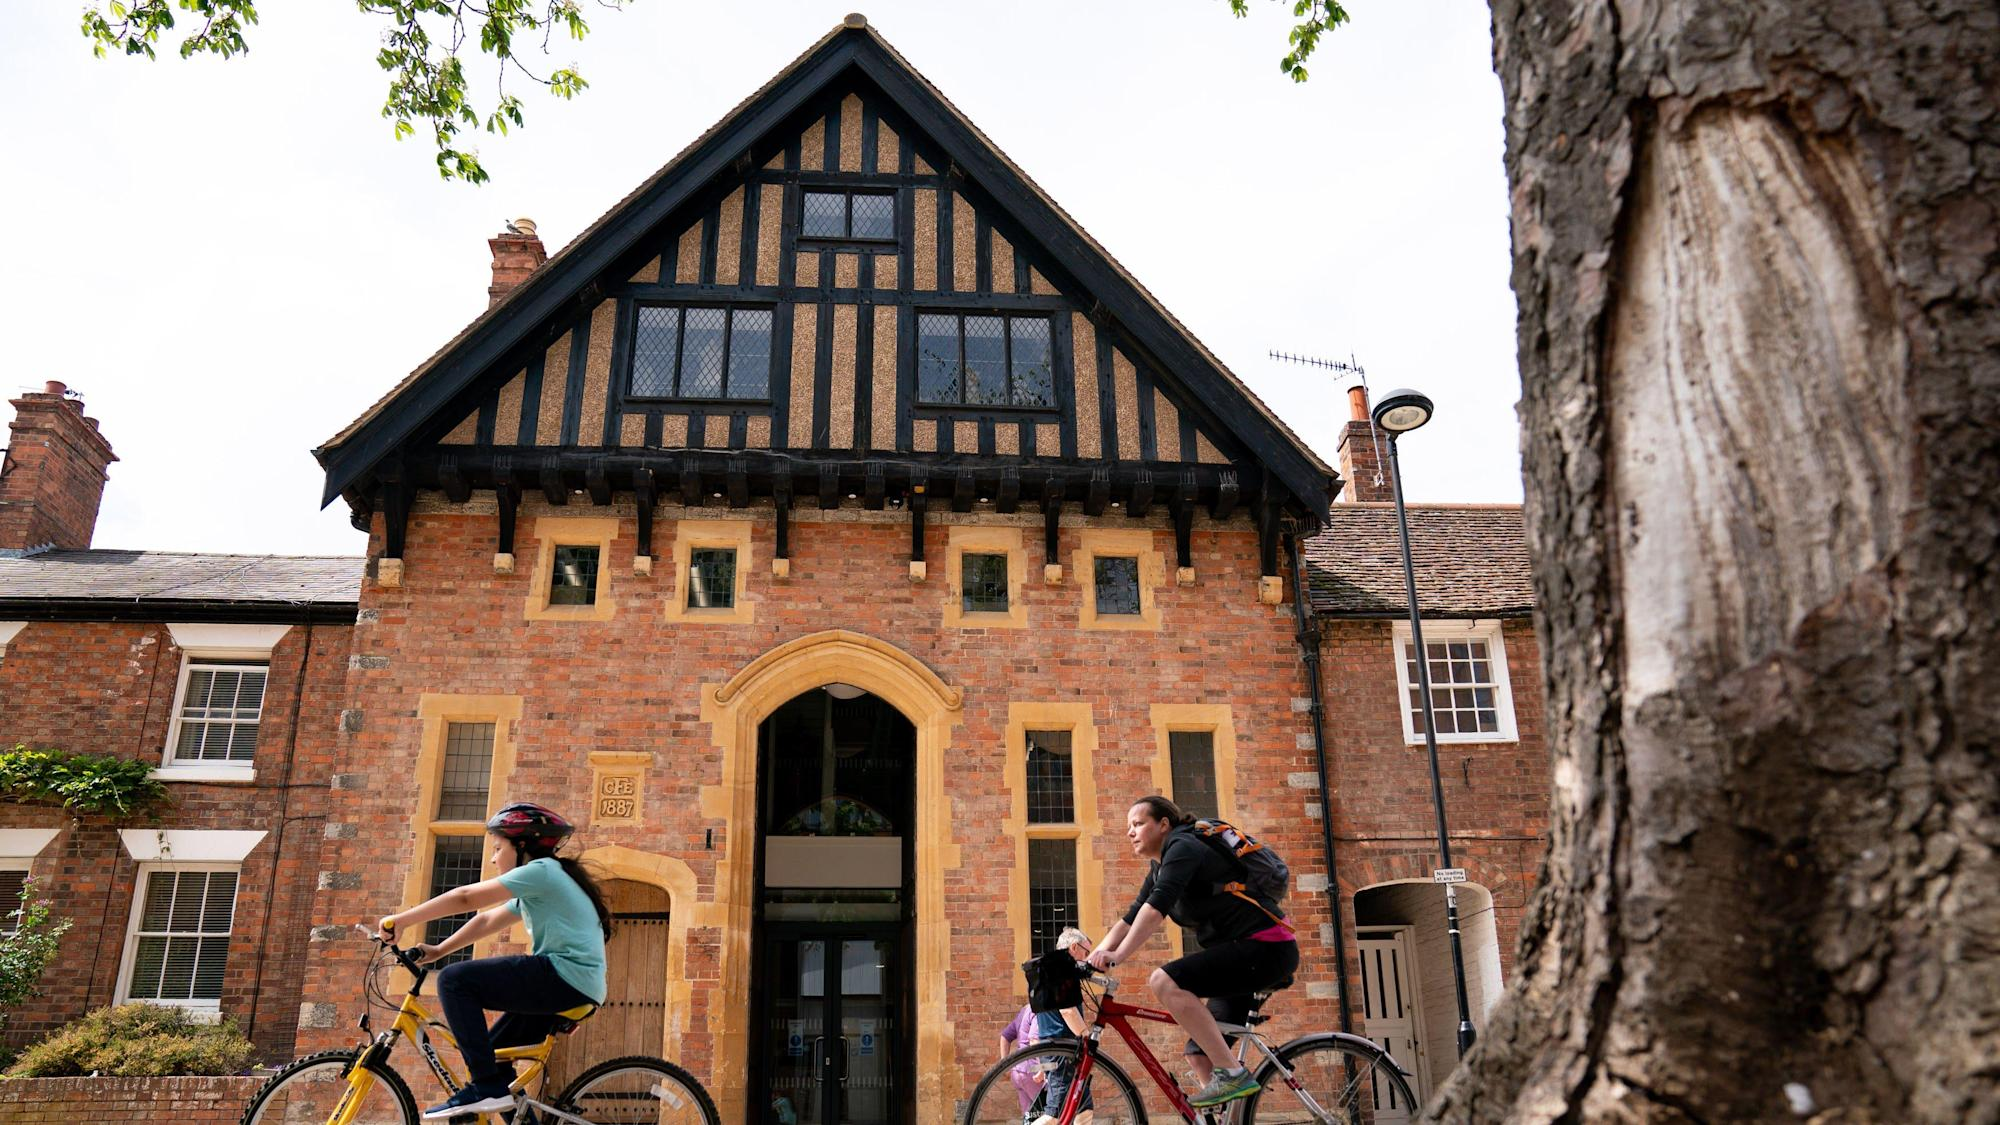 Royal Shakespeare Company's redeveloped costume workshop to open to public